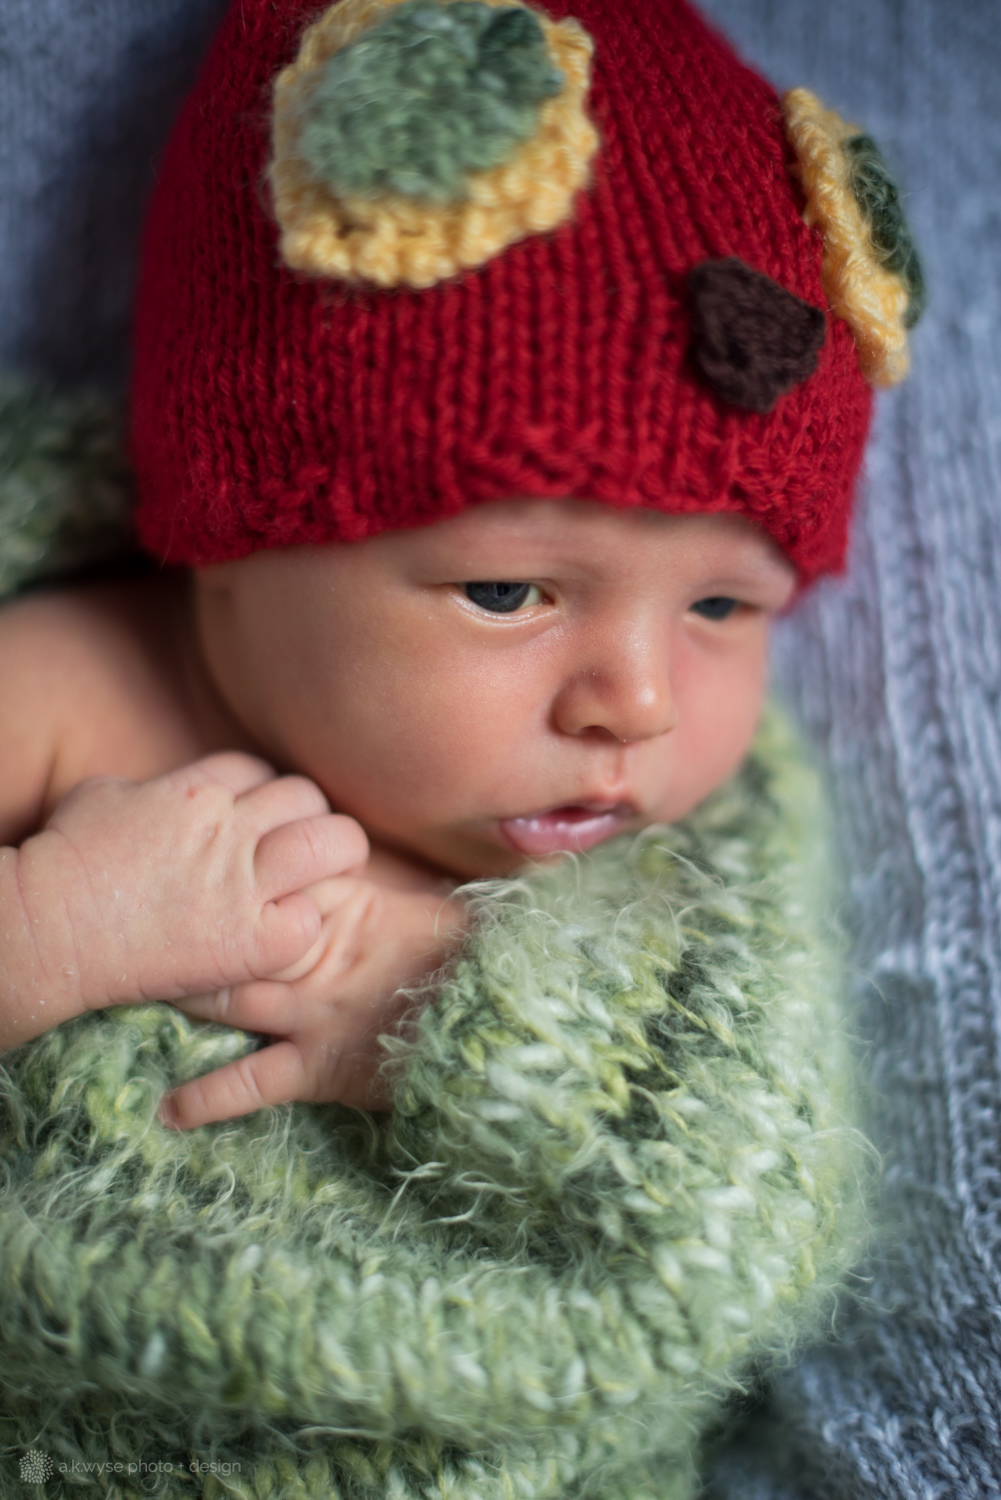 blog-ethan james {newborn 5.17}-8010.jpg